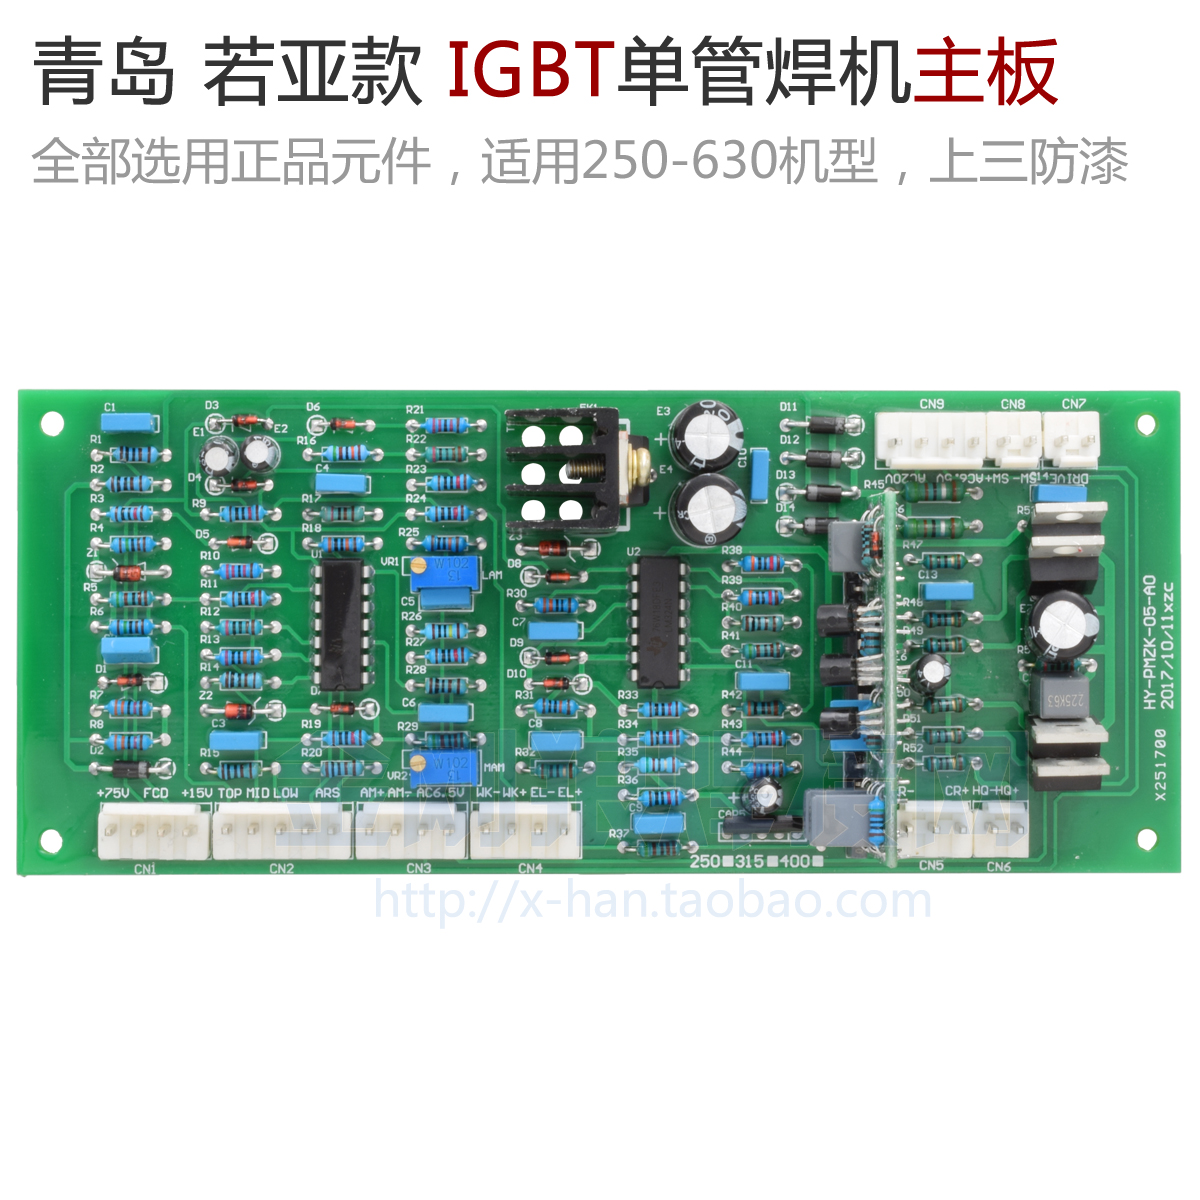 New Ydt Qingdao Igbt Single Pipe Zx7 Inverter Welder Motherboard Pcb Circuit Board Assembly Buy Boardpcb Control Repair Parts